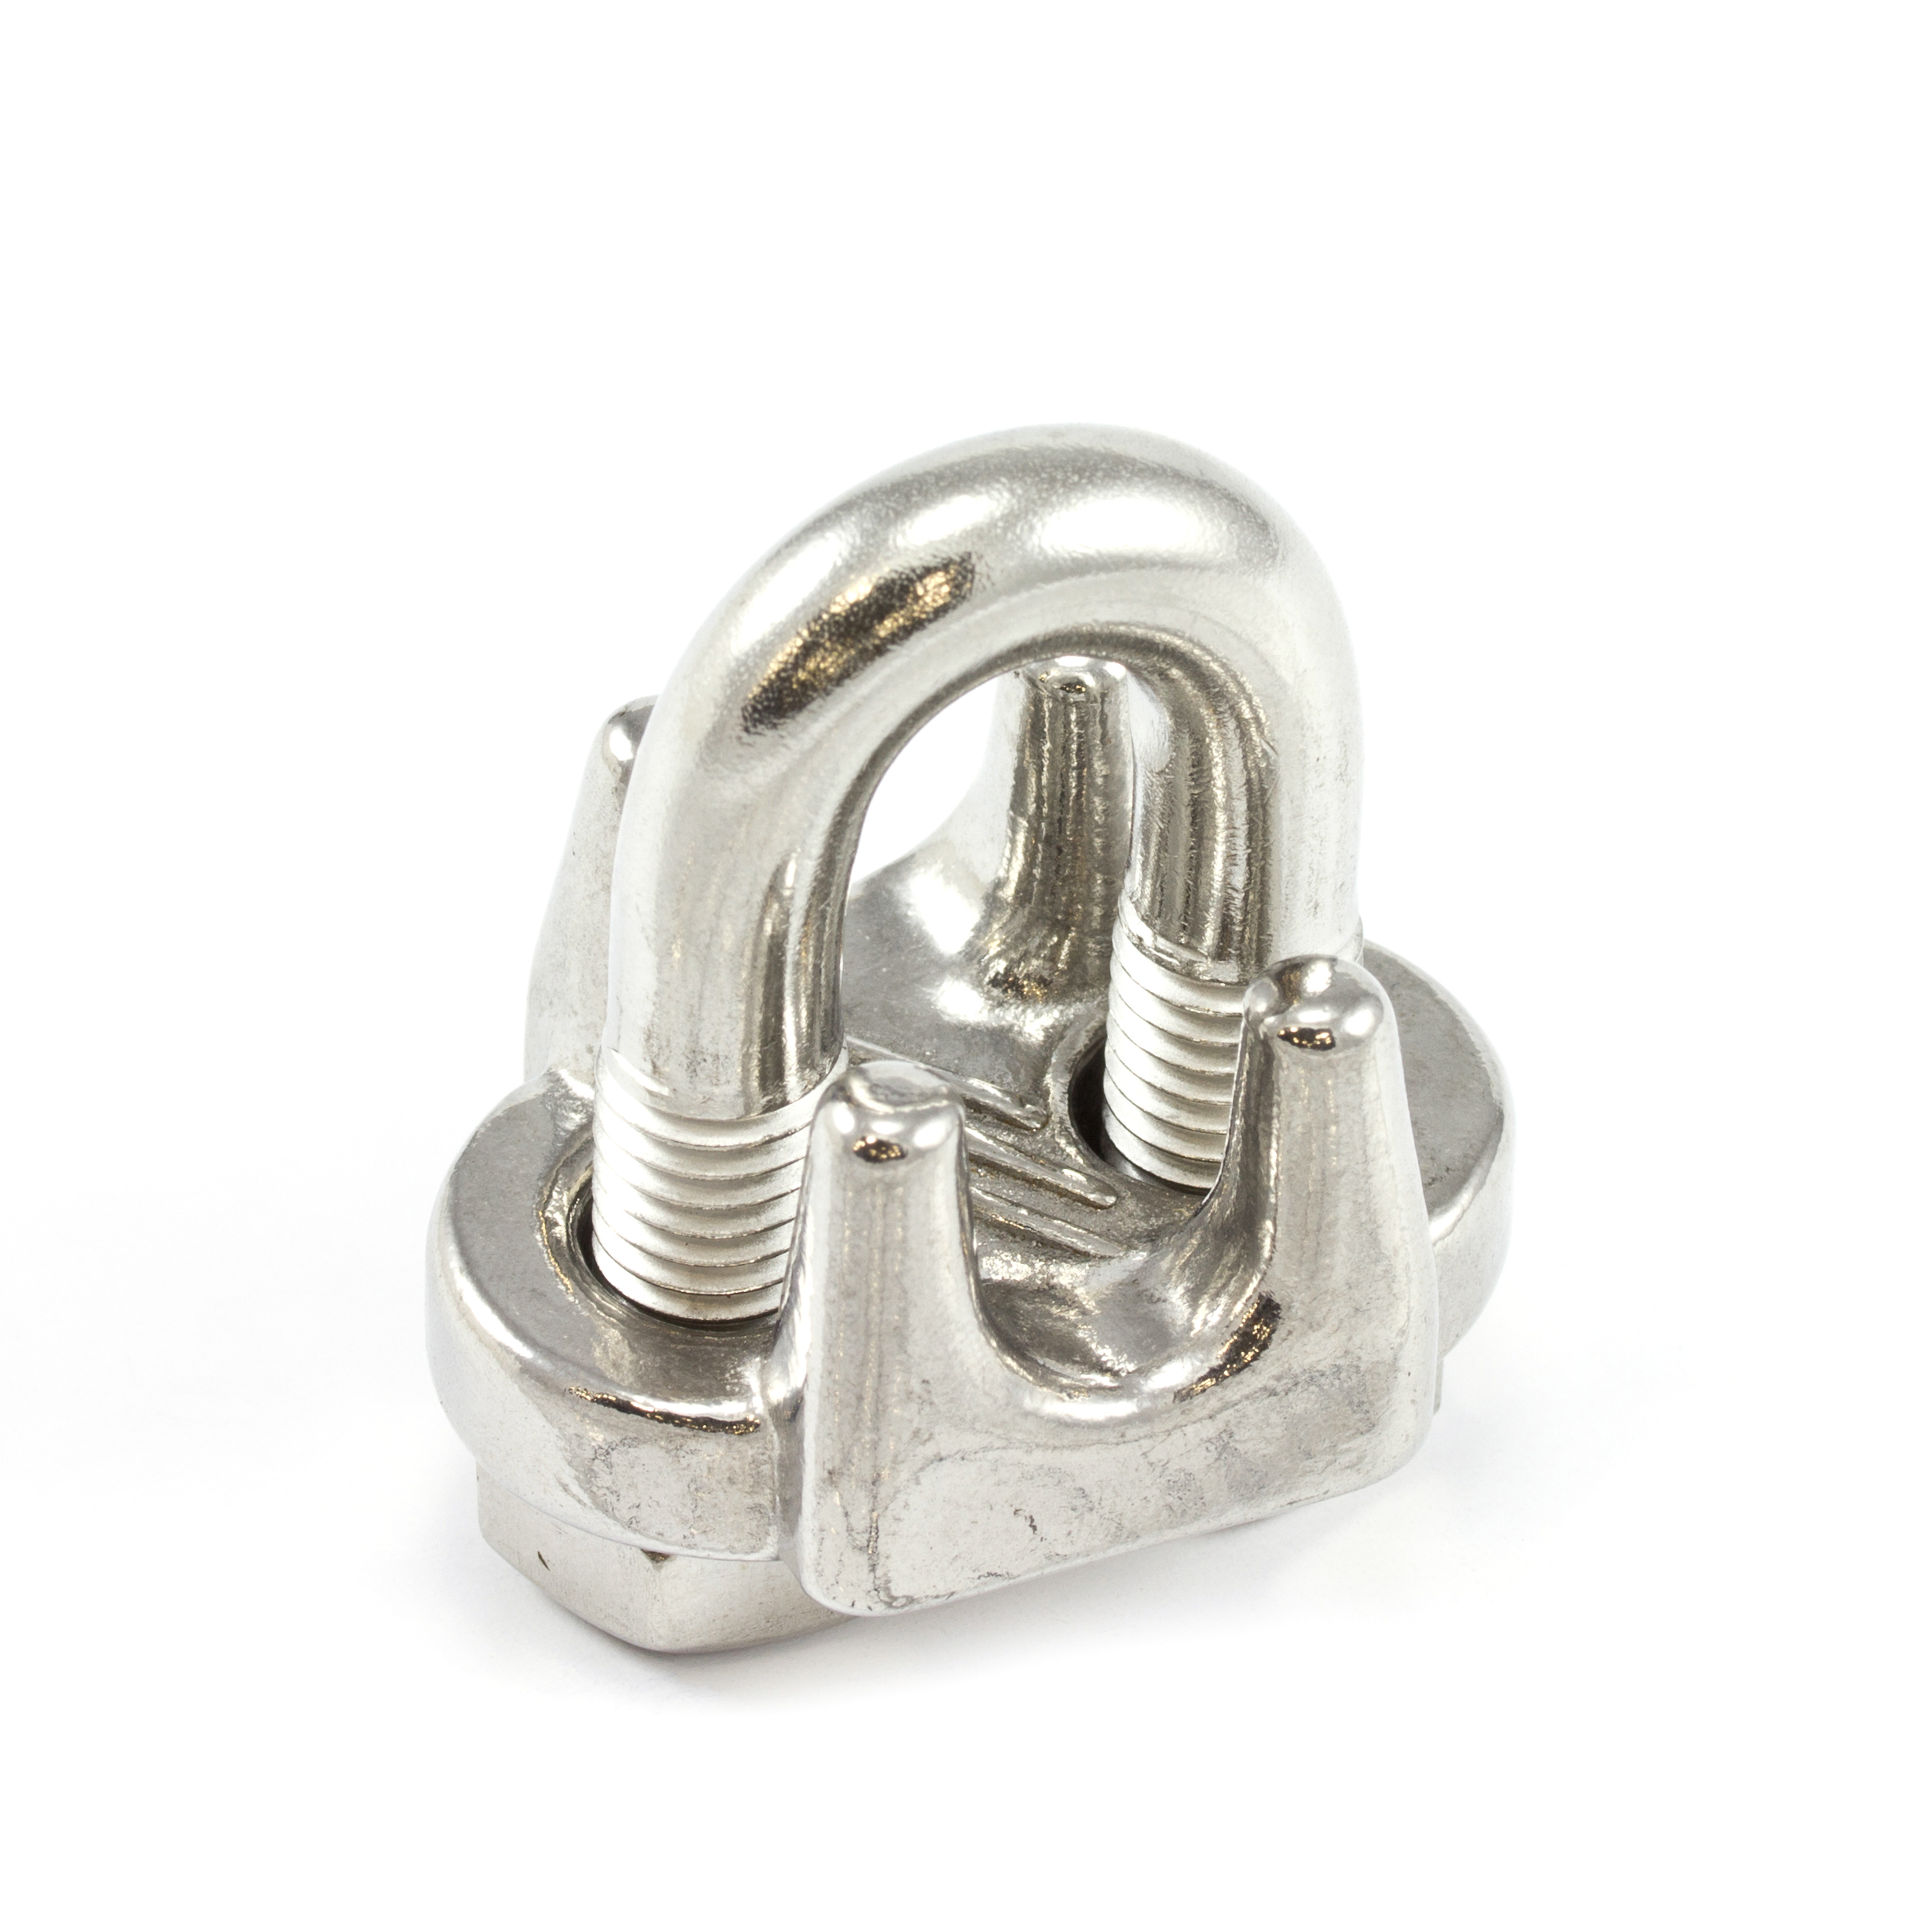 Polyfab Pro Rope Clamp#SS-WRC-10 10mm